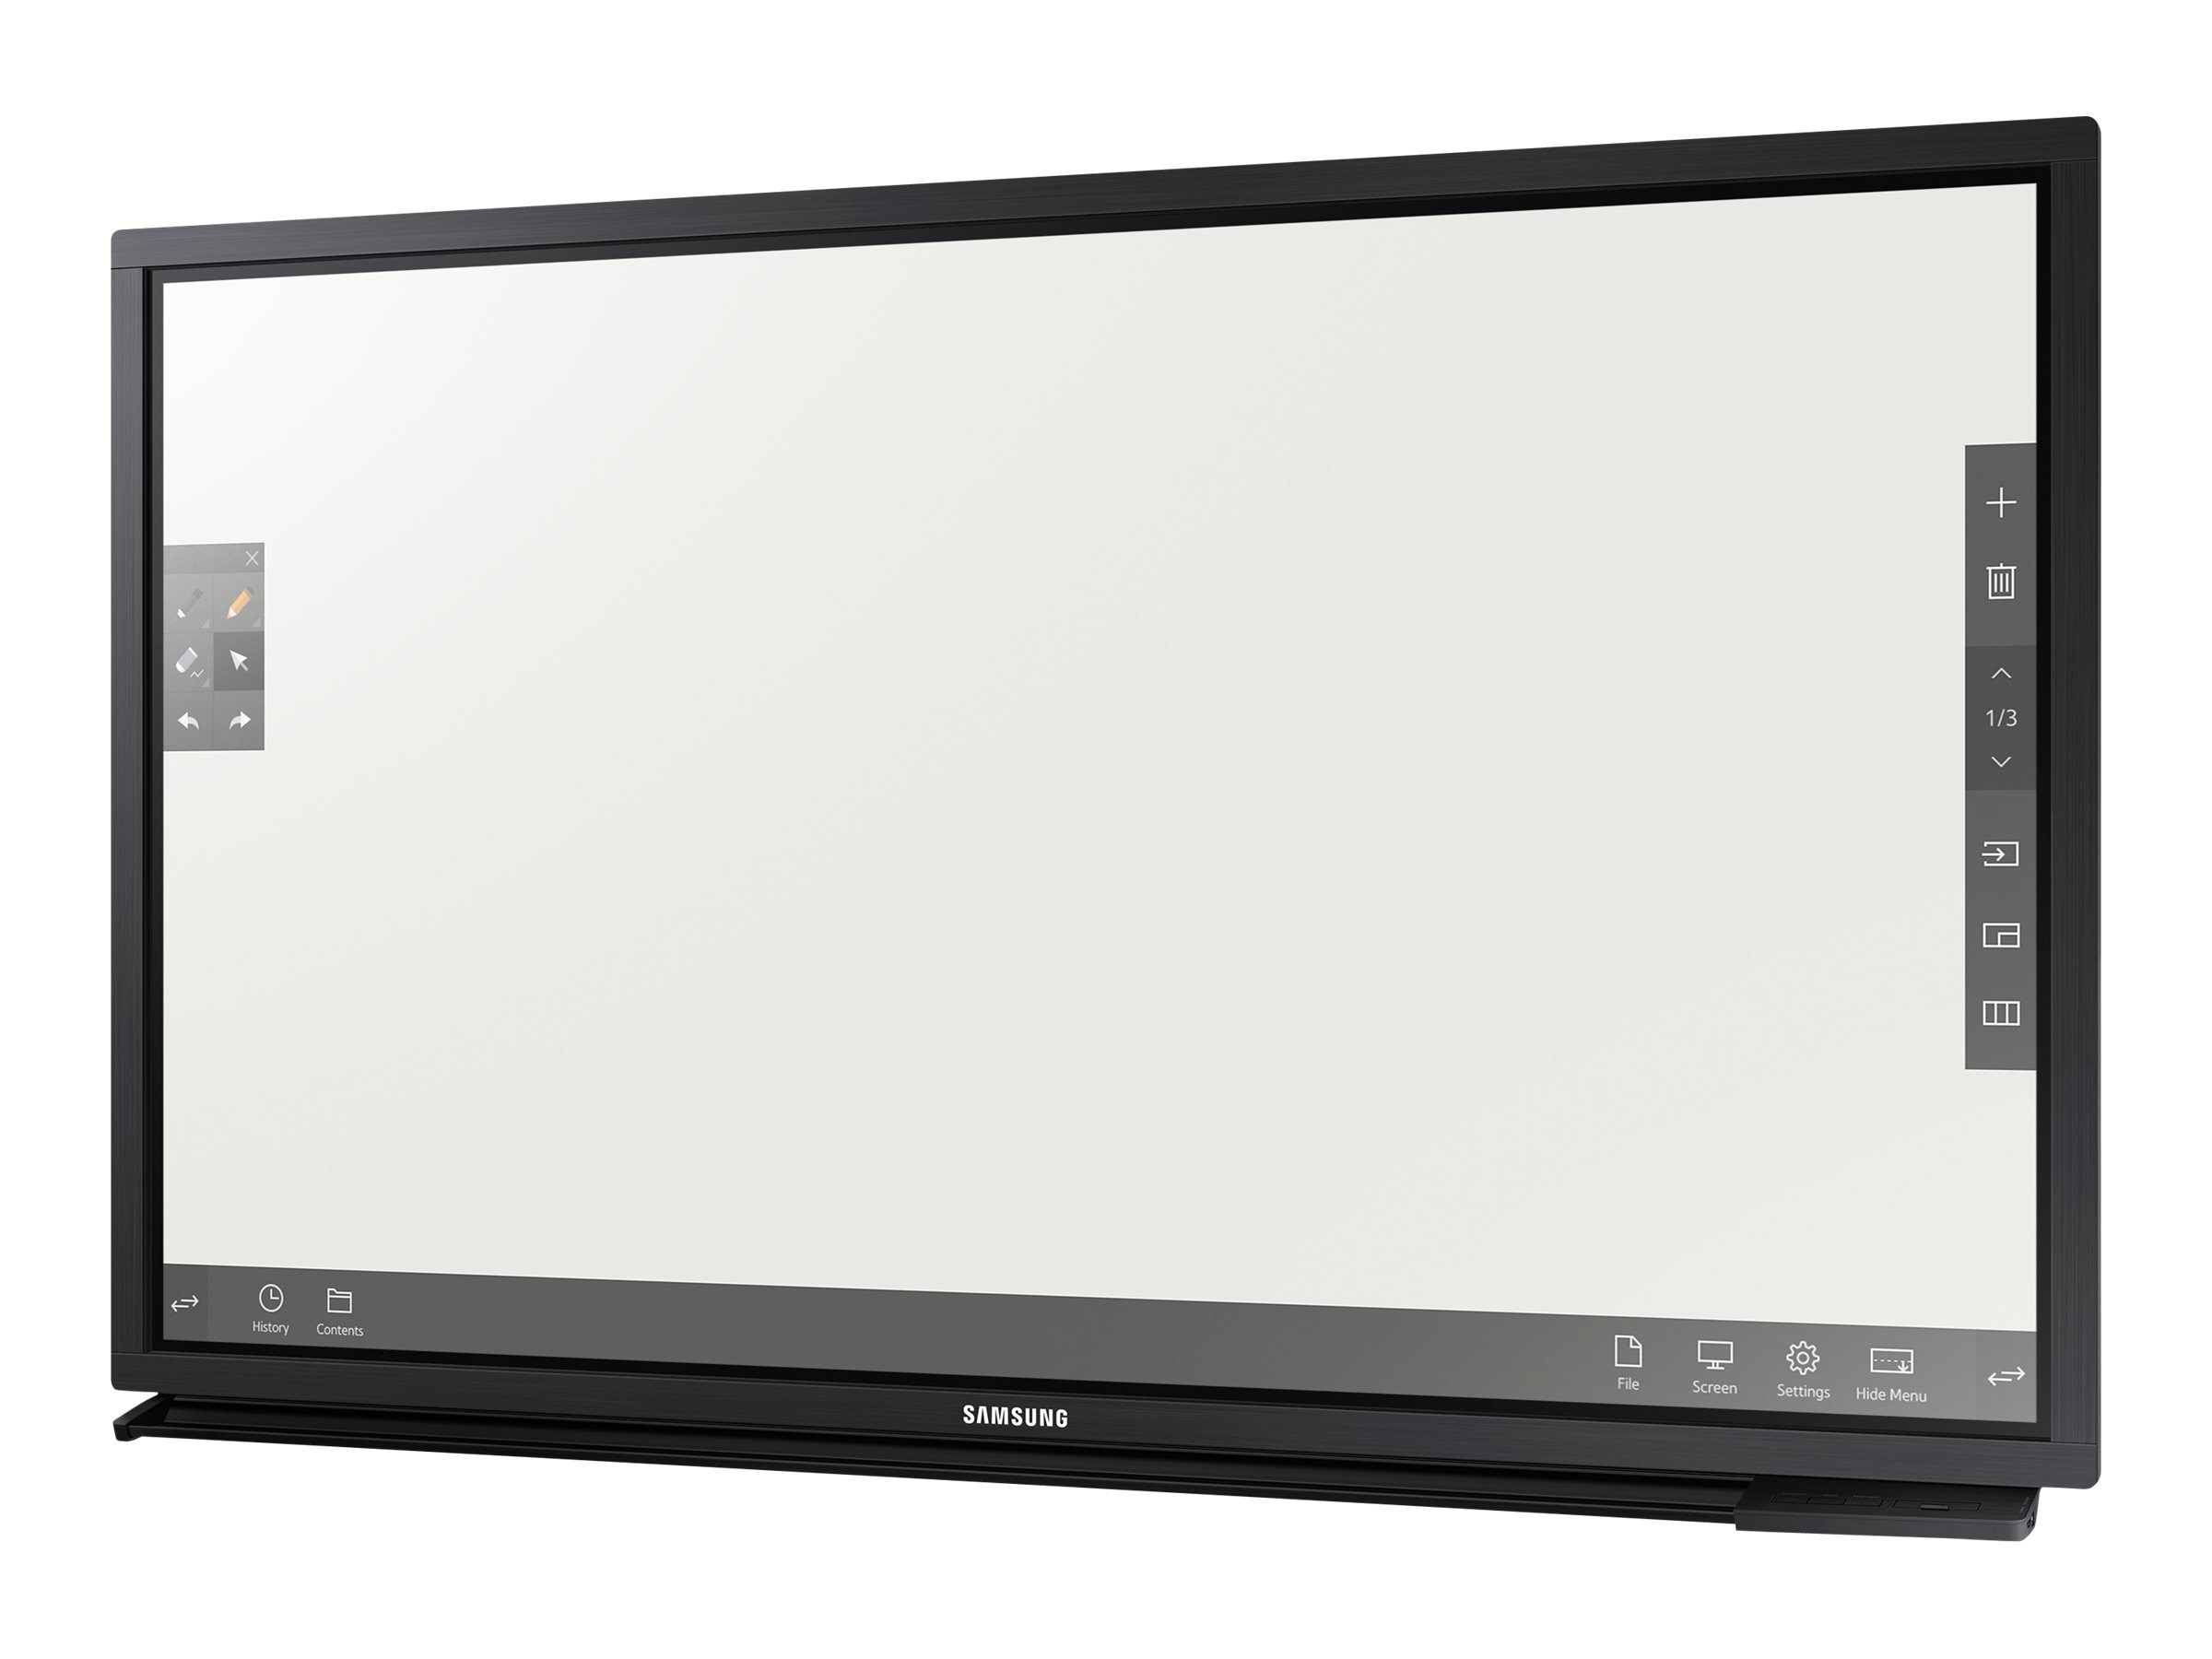 Samsung 75 DME-BR Full HD LED-LCD Touchscreen Display, Black, DM75E-BR